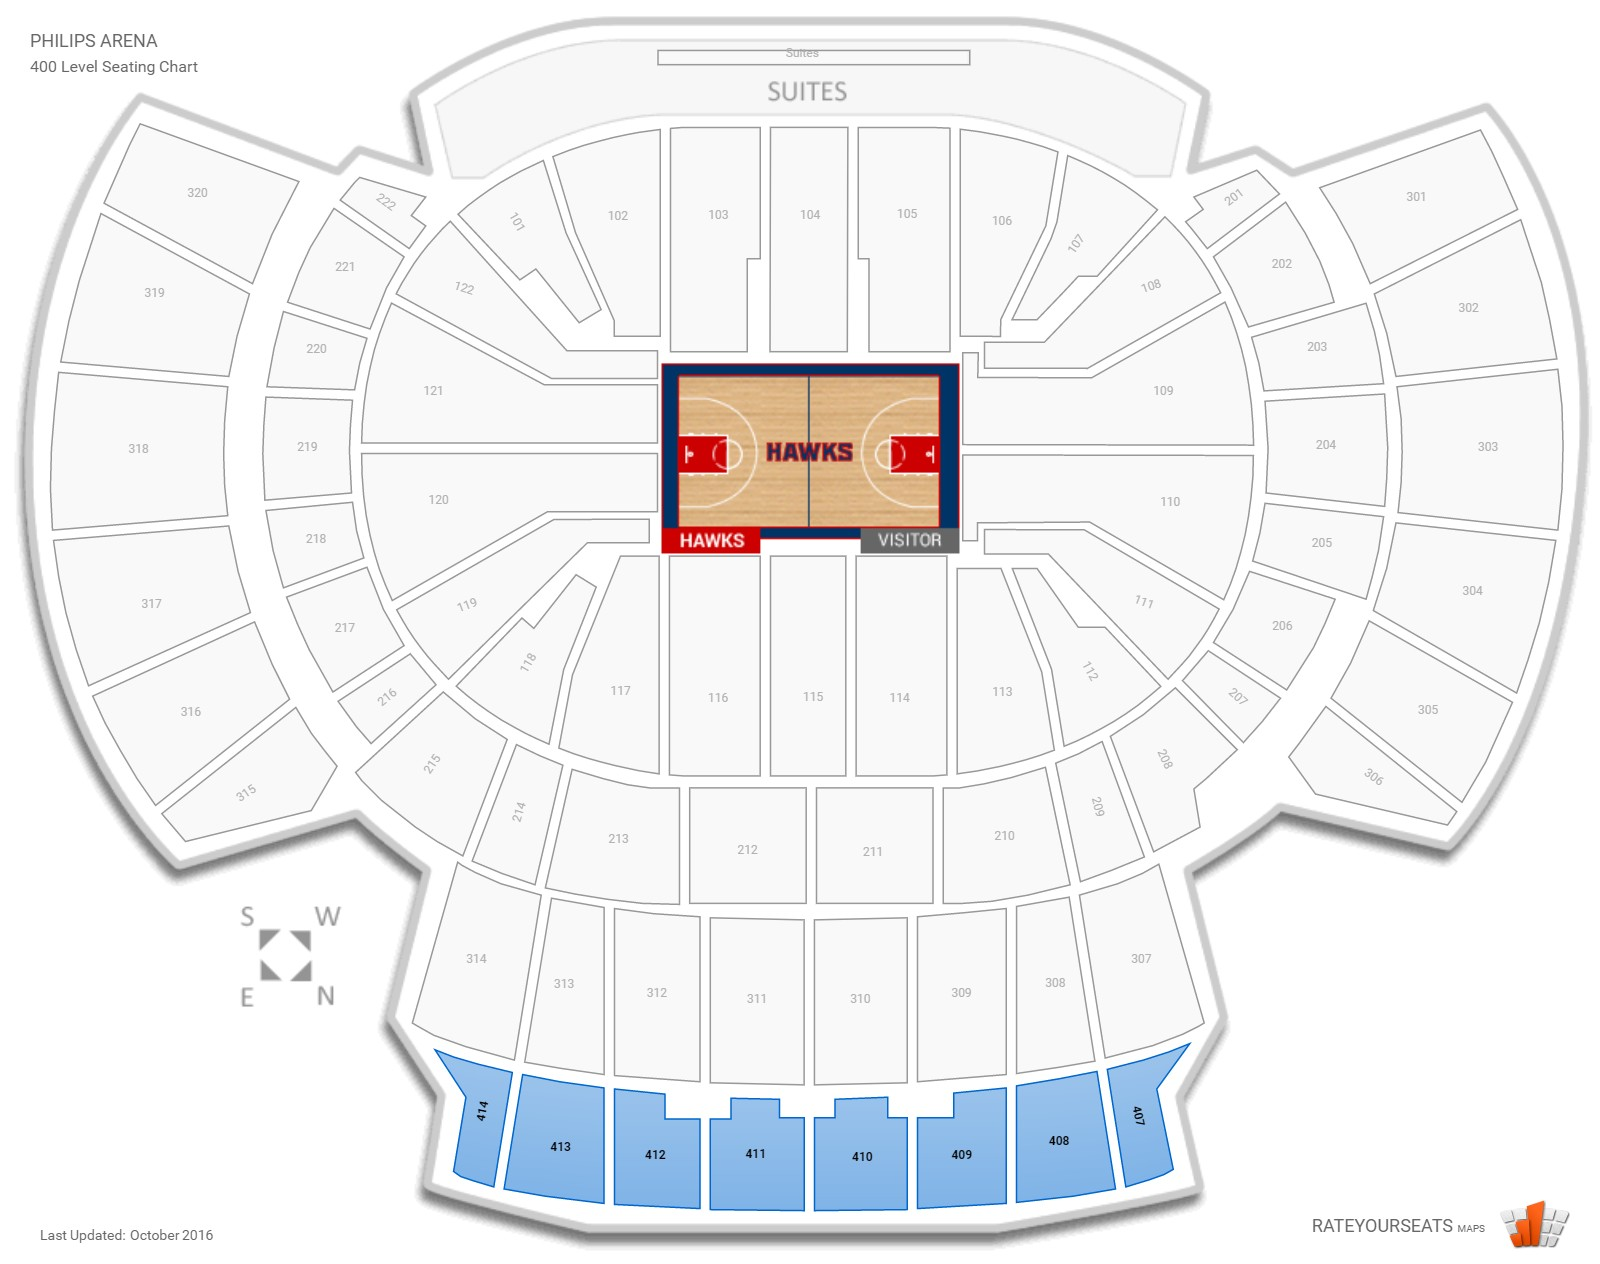 Philips Arena 400 Level seating chart